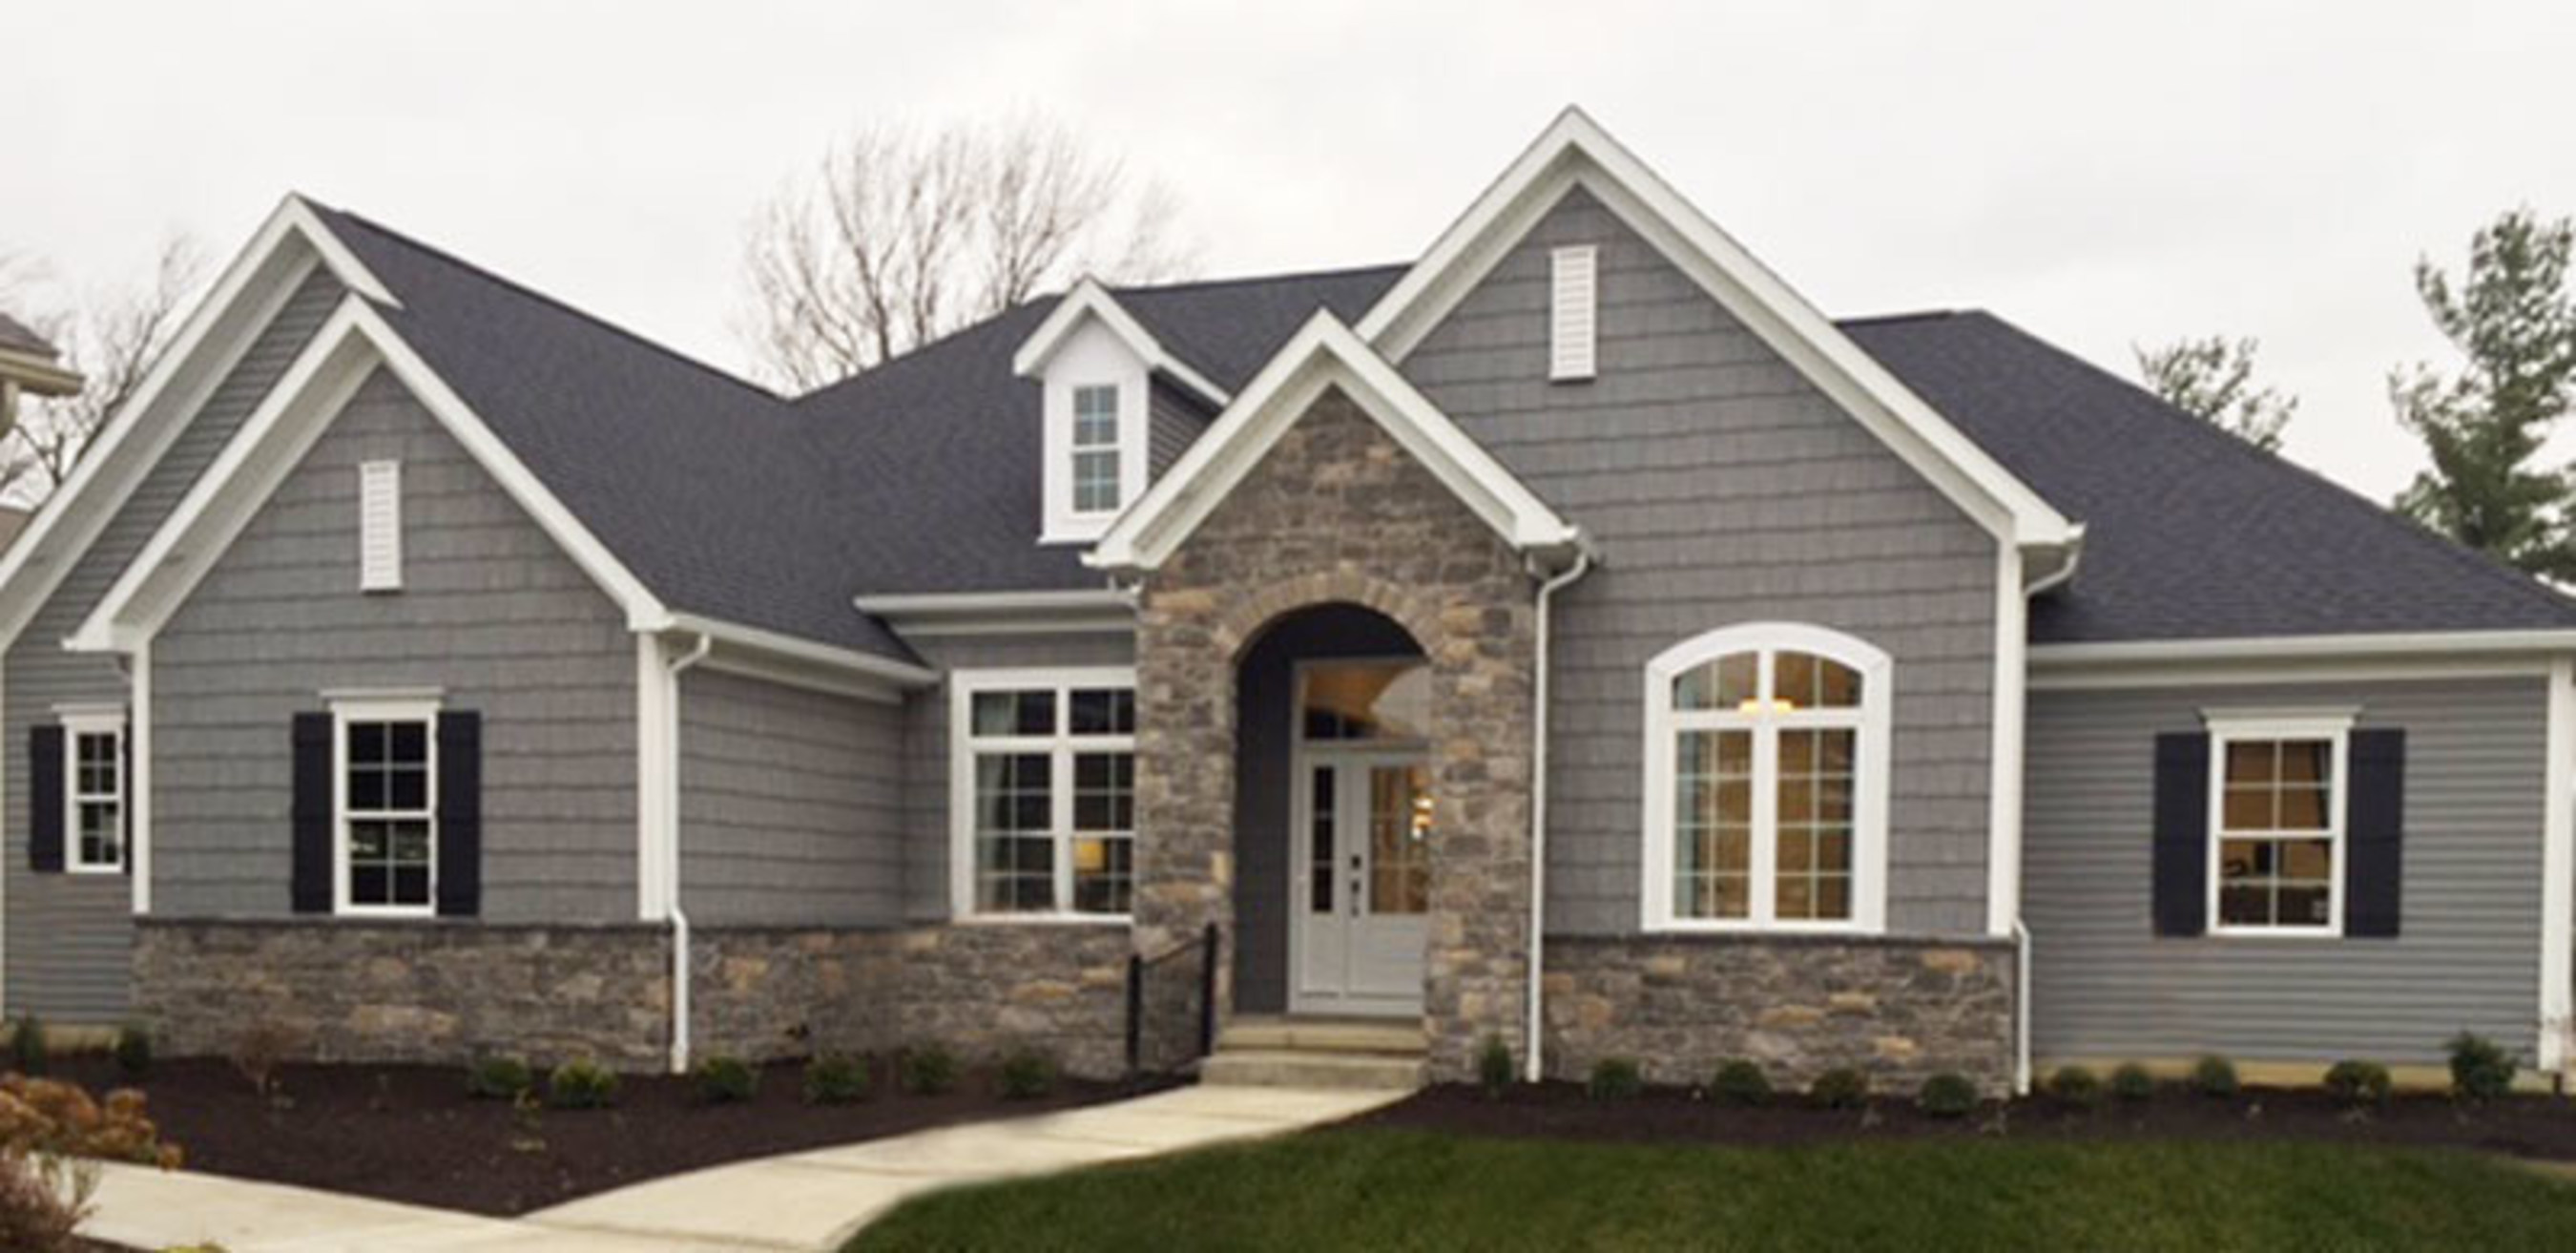 Custom Home Builder Schumacher Homes Opens Exciting New Model Home in Lewis Center, OH